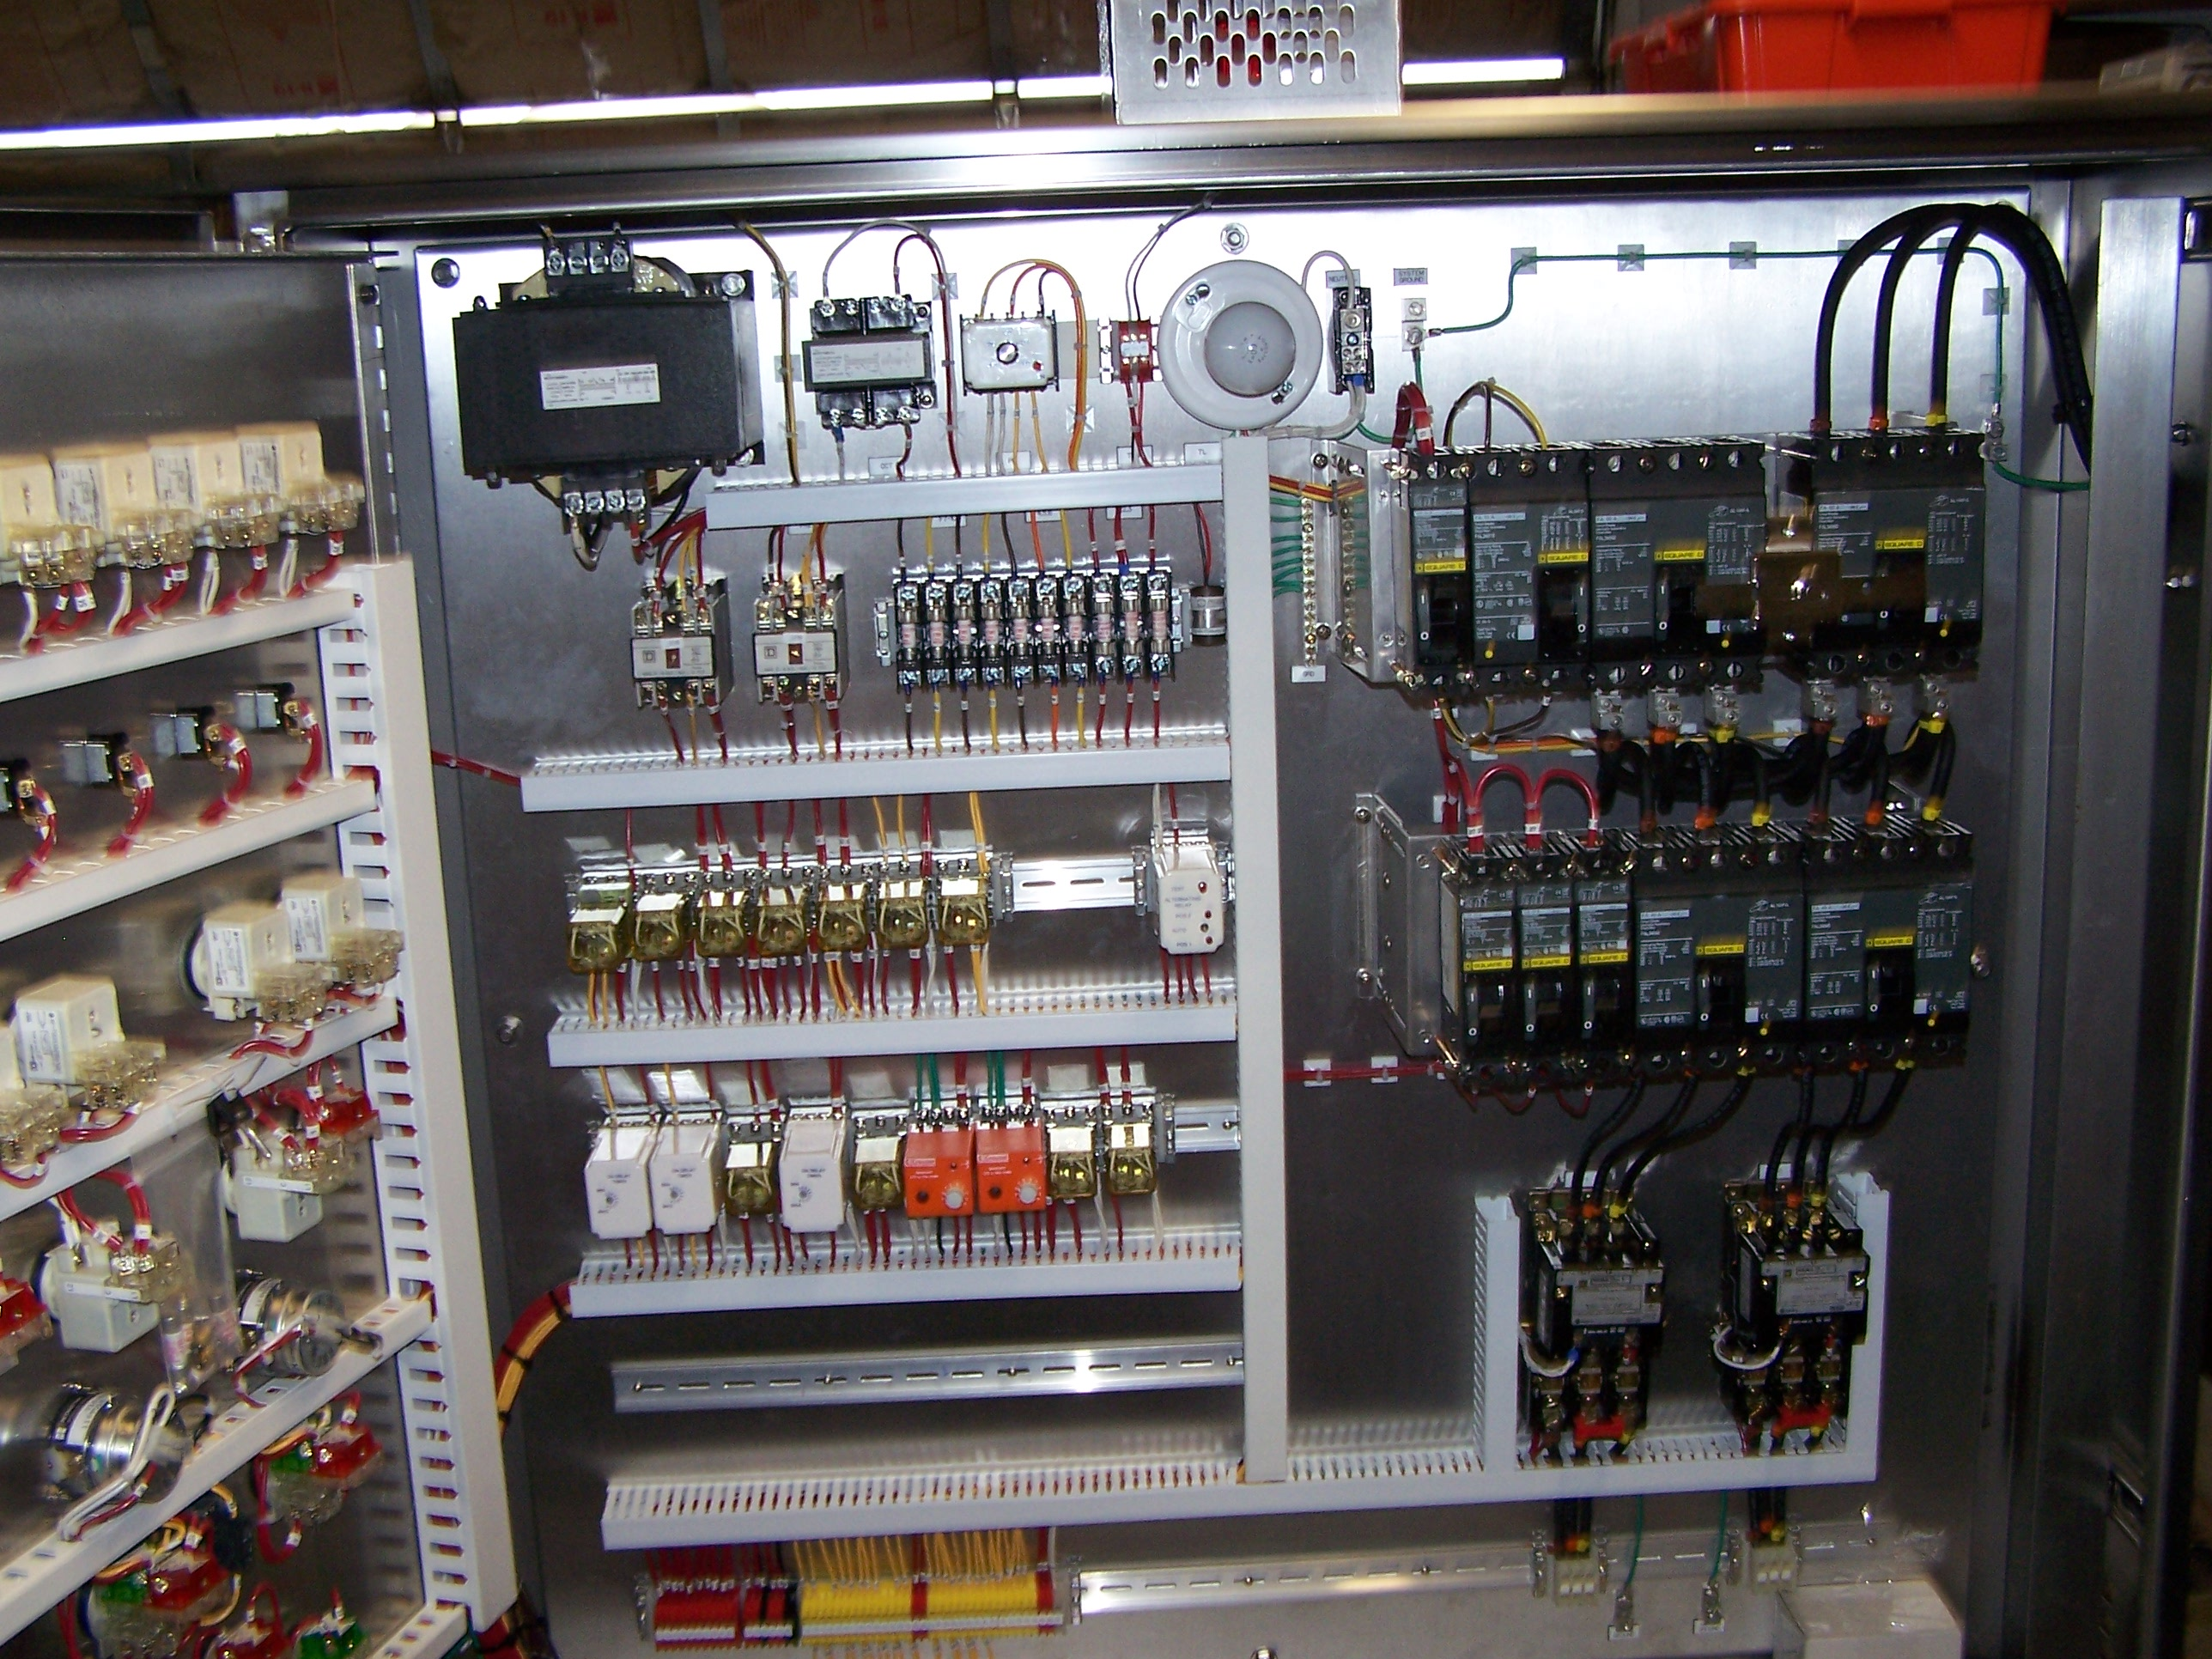 3 phase autotransformer wiring diagram carling dpdt switch auto transformer motor control   library